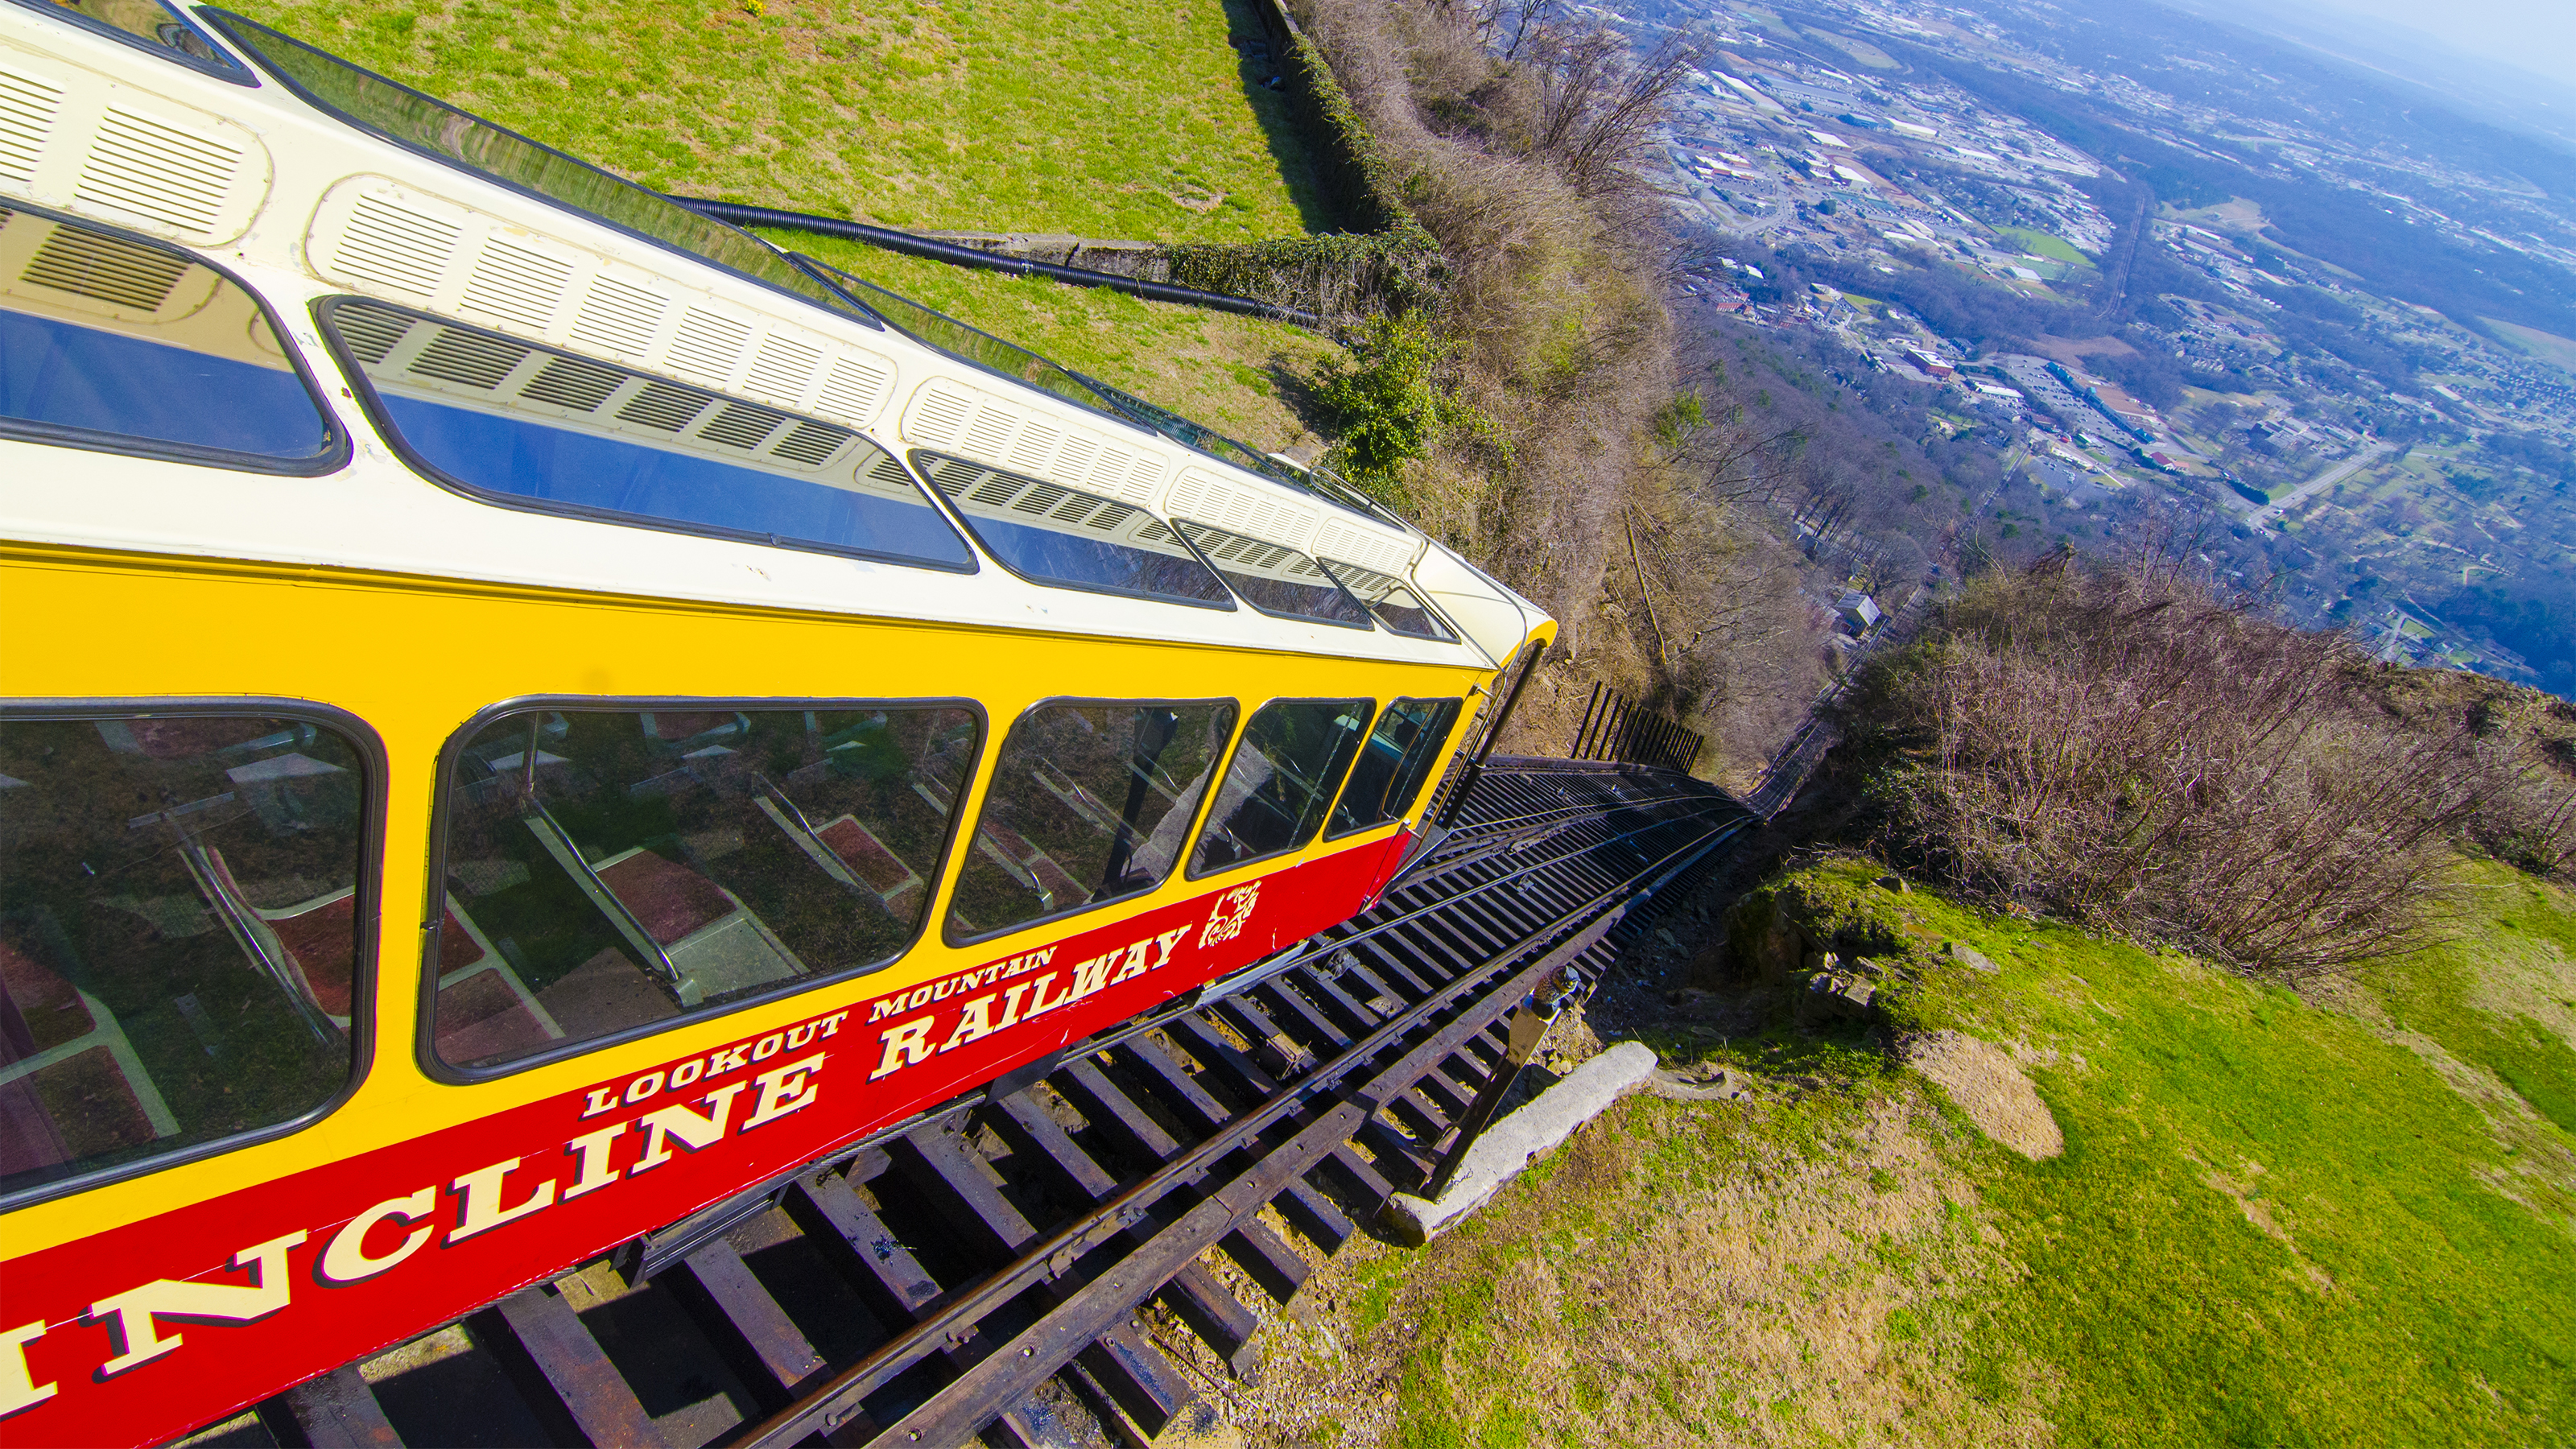 The funicular railroad system of the Incline Railroad is over 100 years old and still transports riders up Lookout Mountain. Photo courtesy of Chattanooga Convention and Visitors Bureau.